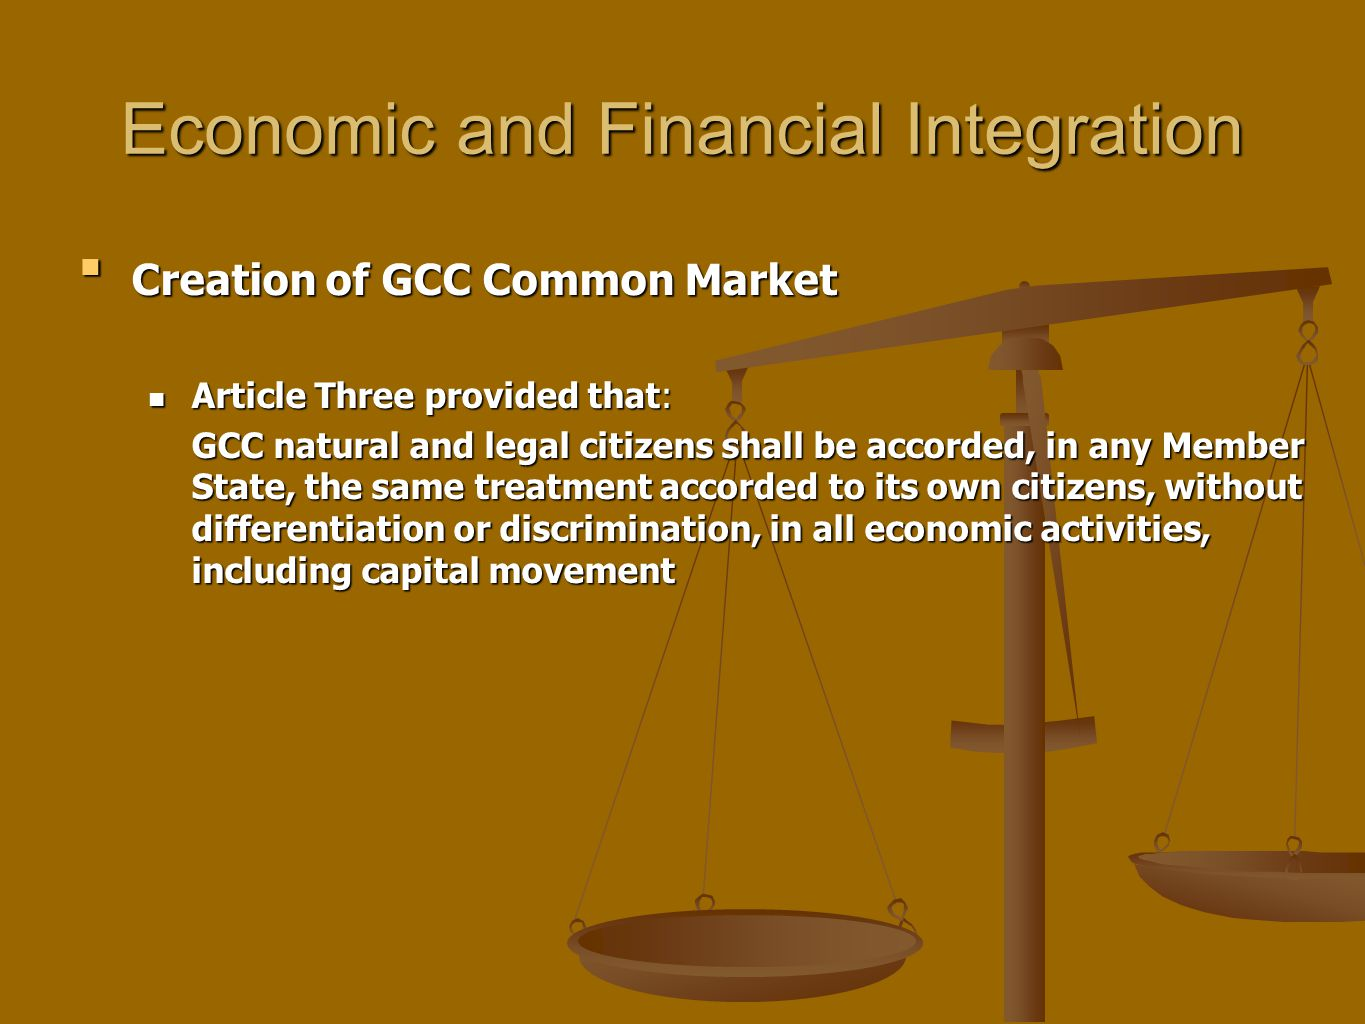 Economic and Financial Integration Creation of GCC Common MarketCreation of GCC Common Market Article Three provided that: Article Three provided that